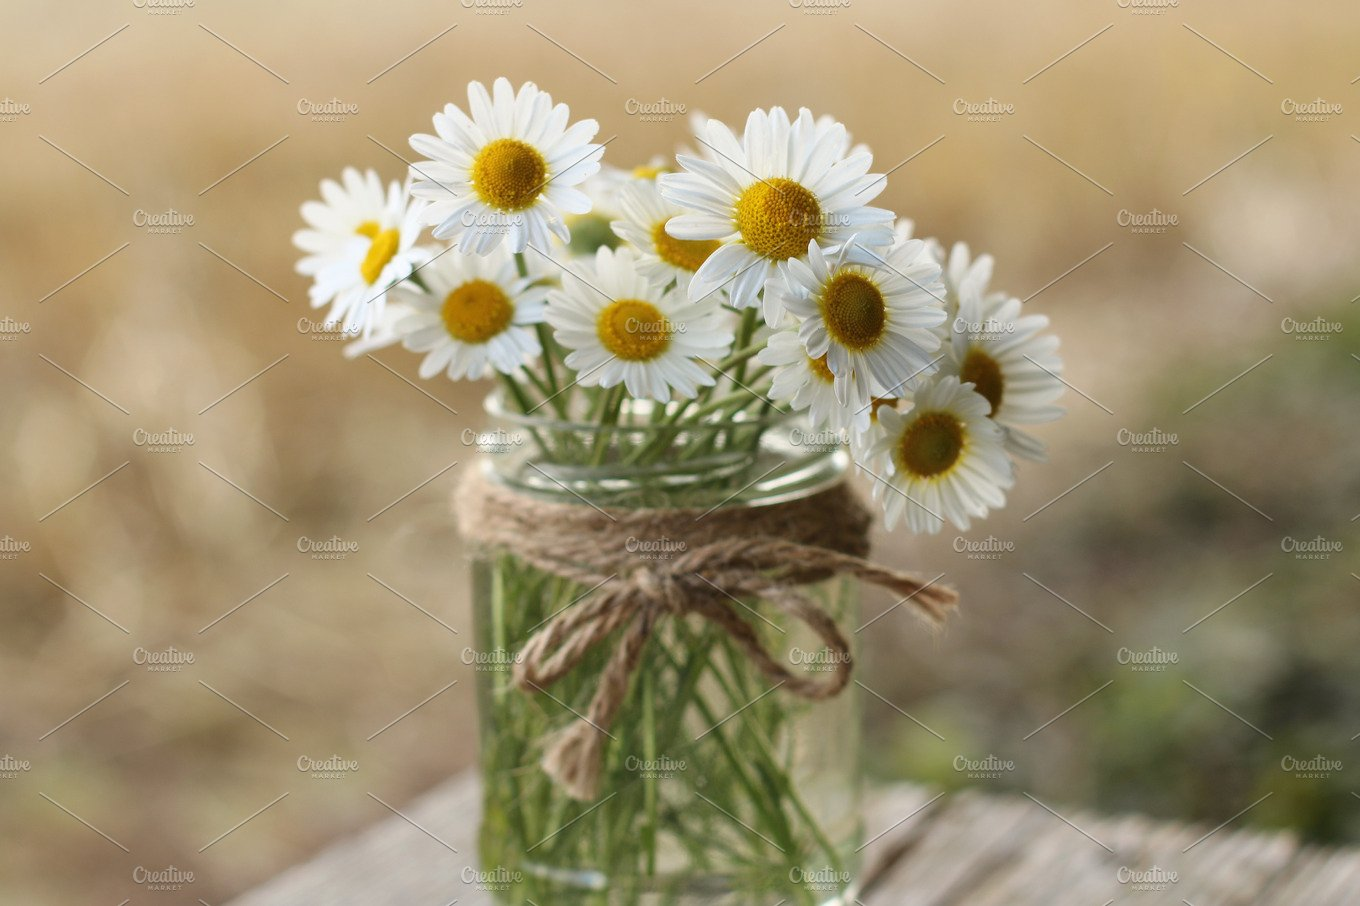 Little daisy flowers in a glass jar nature photos creative market izmirmasajfo